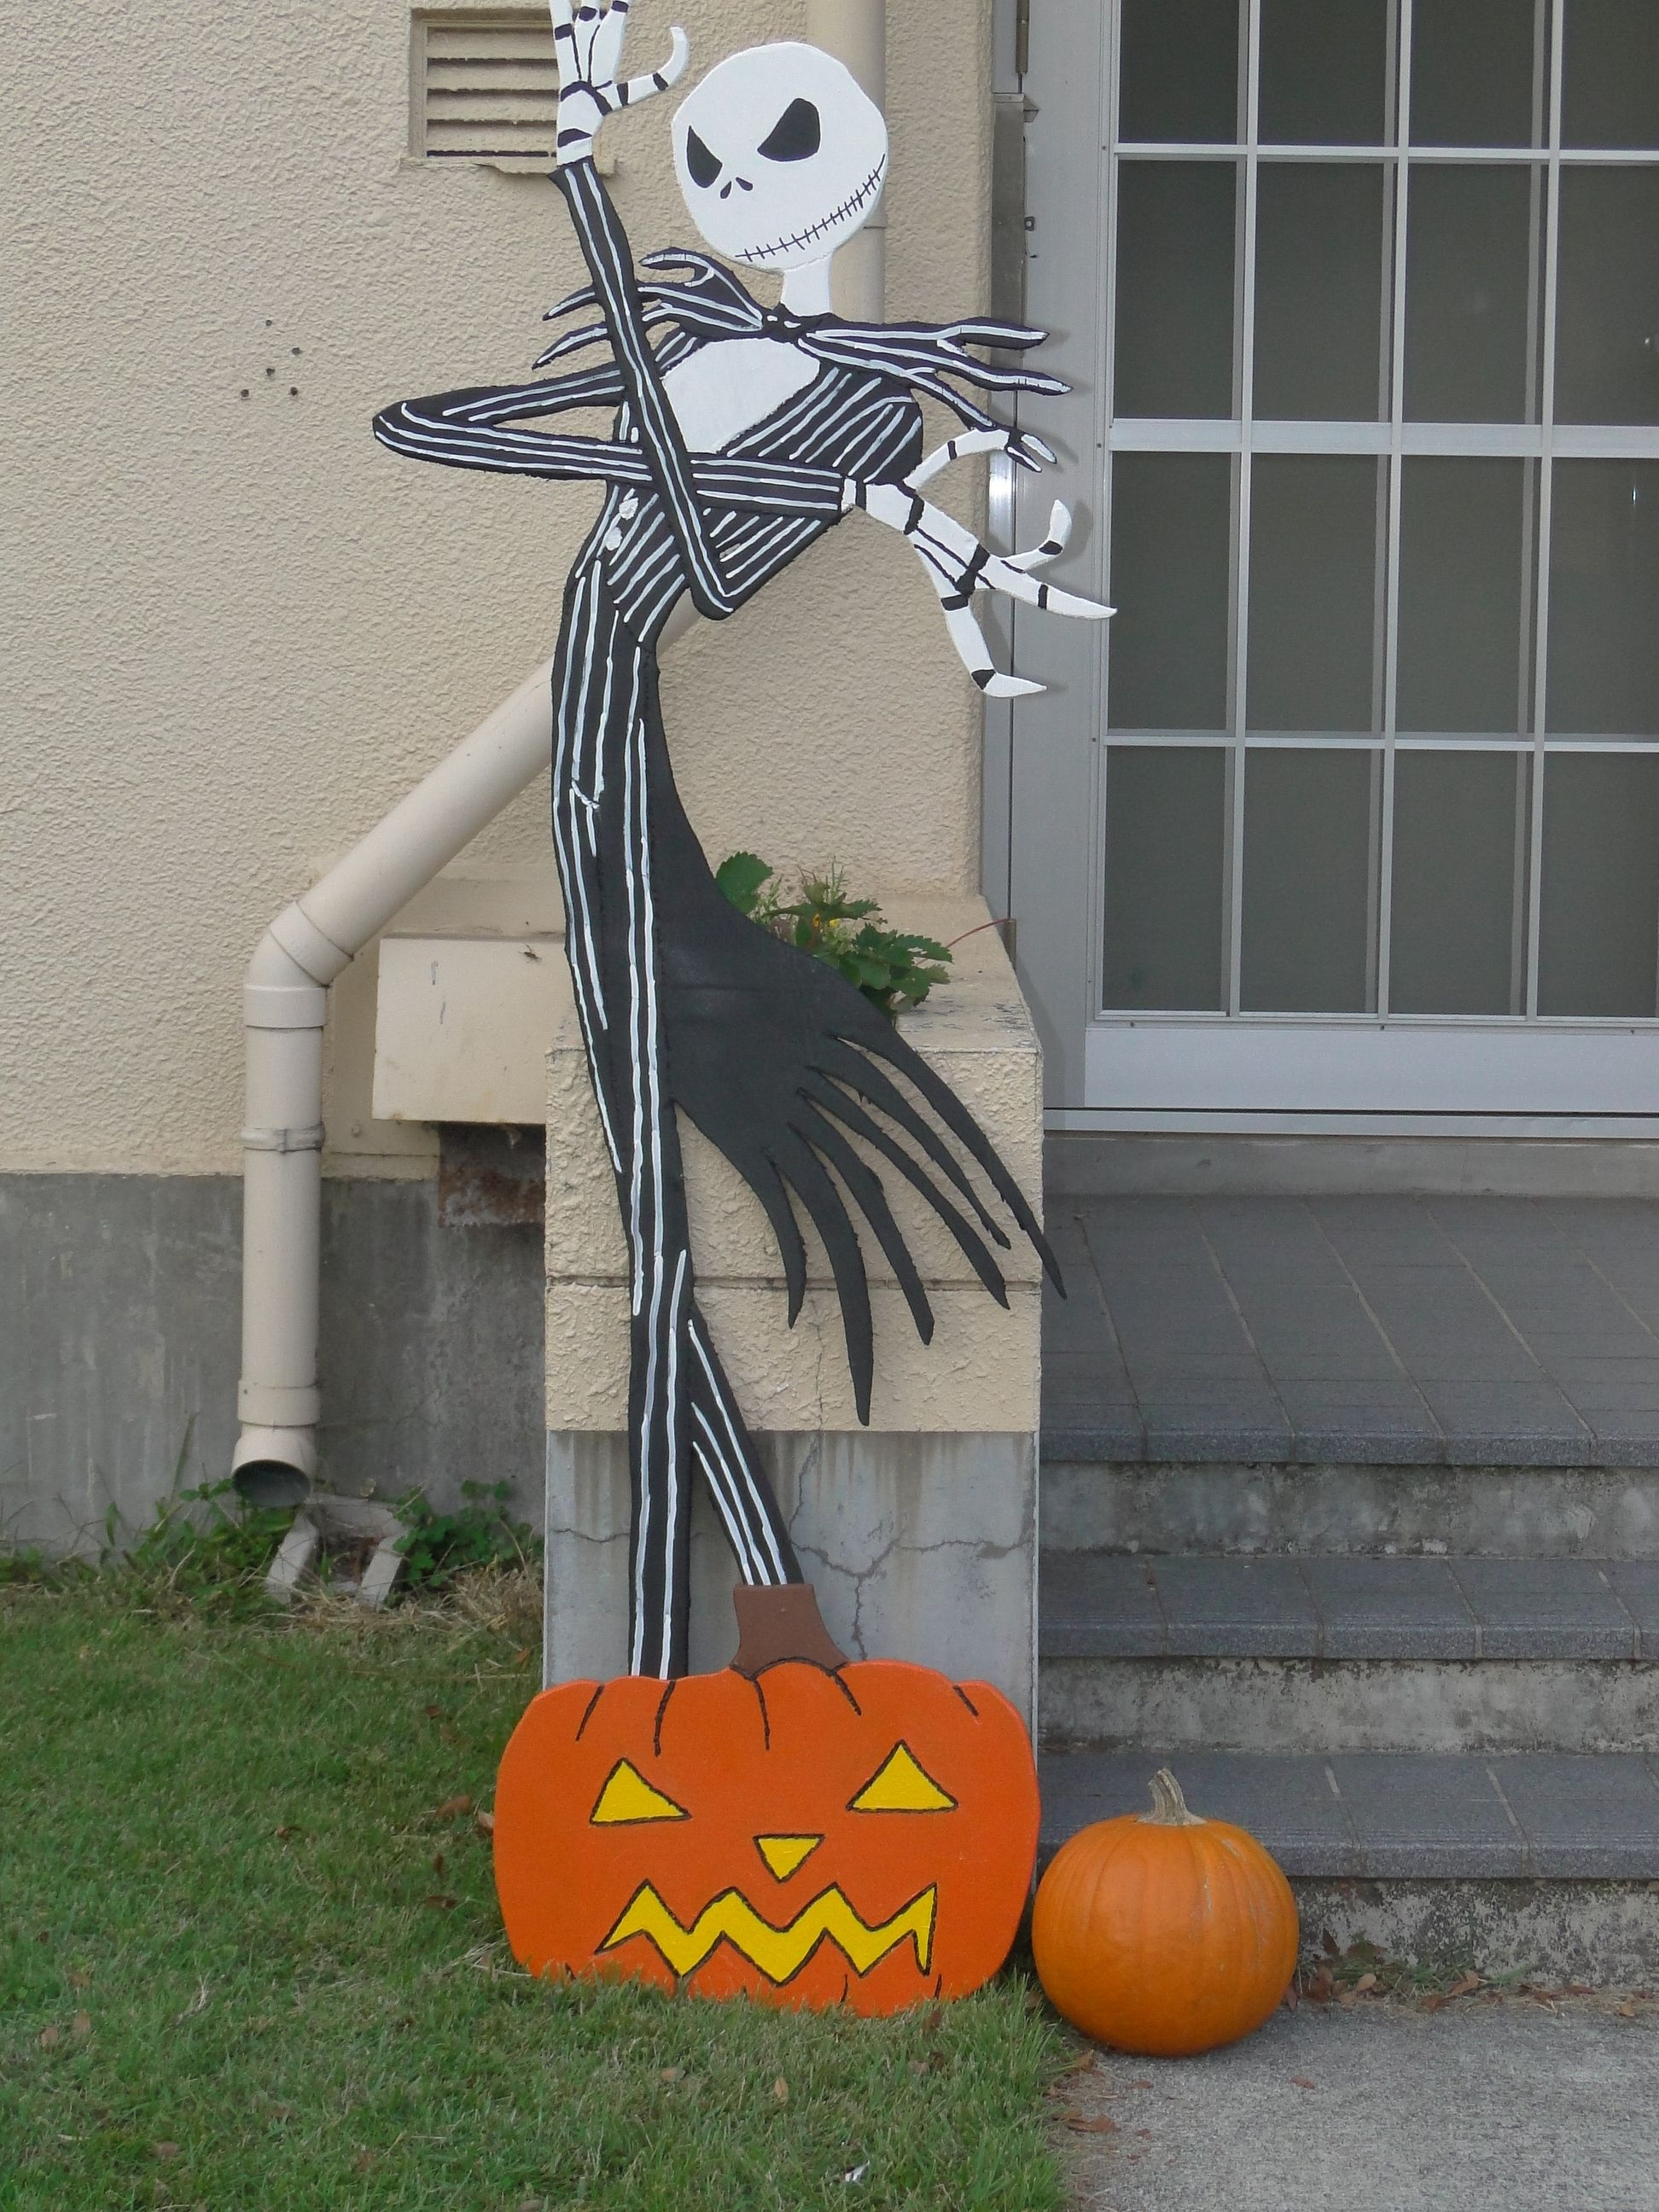 nightmare before Christmas Halloween yard decor | crafts i have made ...